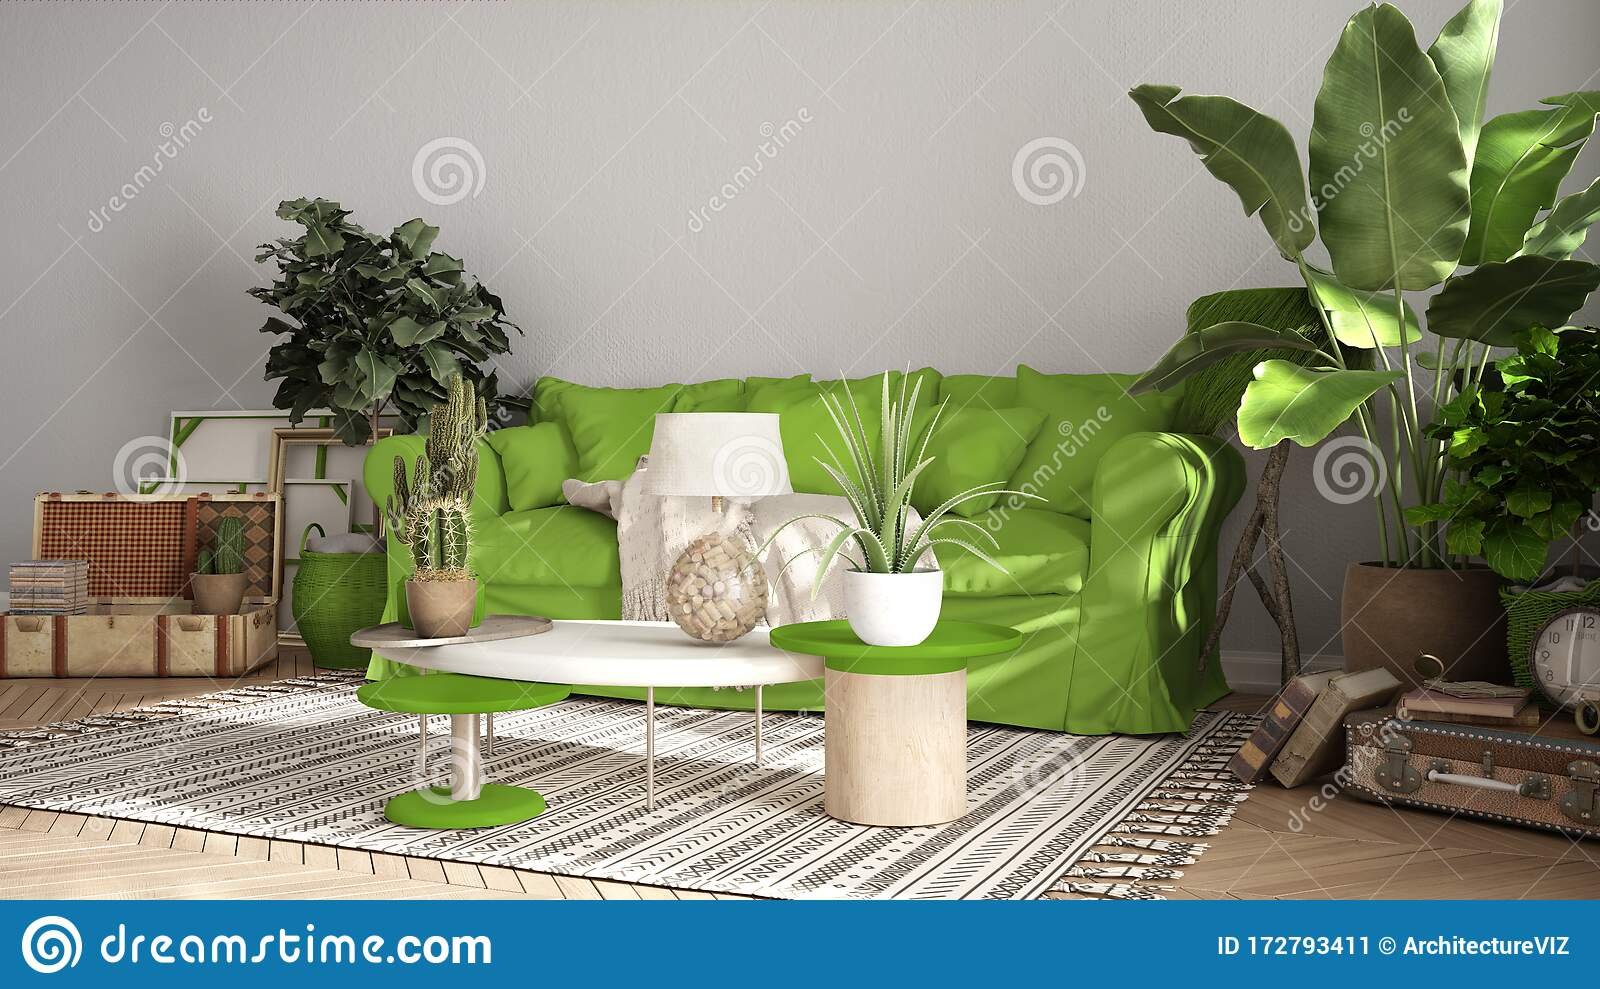 Vintage Old Style Living Room In Green Tones Sofa Carpet And Pillows Tables With Decors And Potted Plants Carpet Window Stock Illustration Illustration Of Indoor Design 172793411